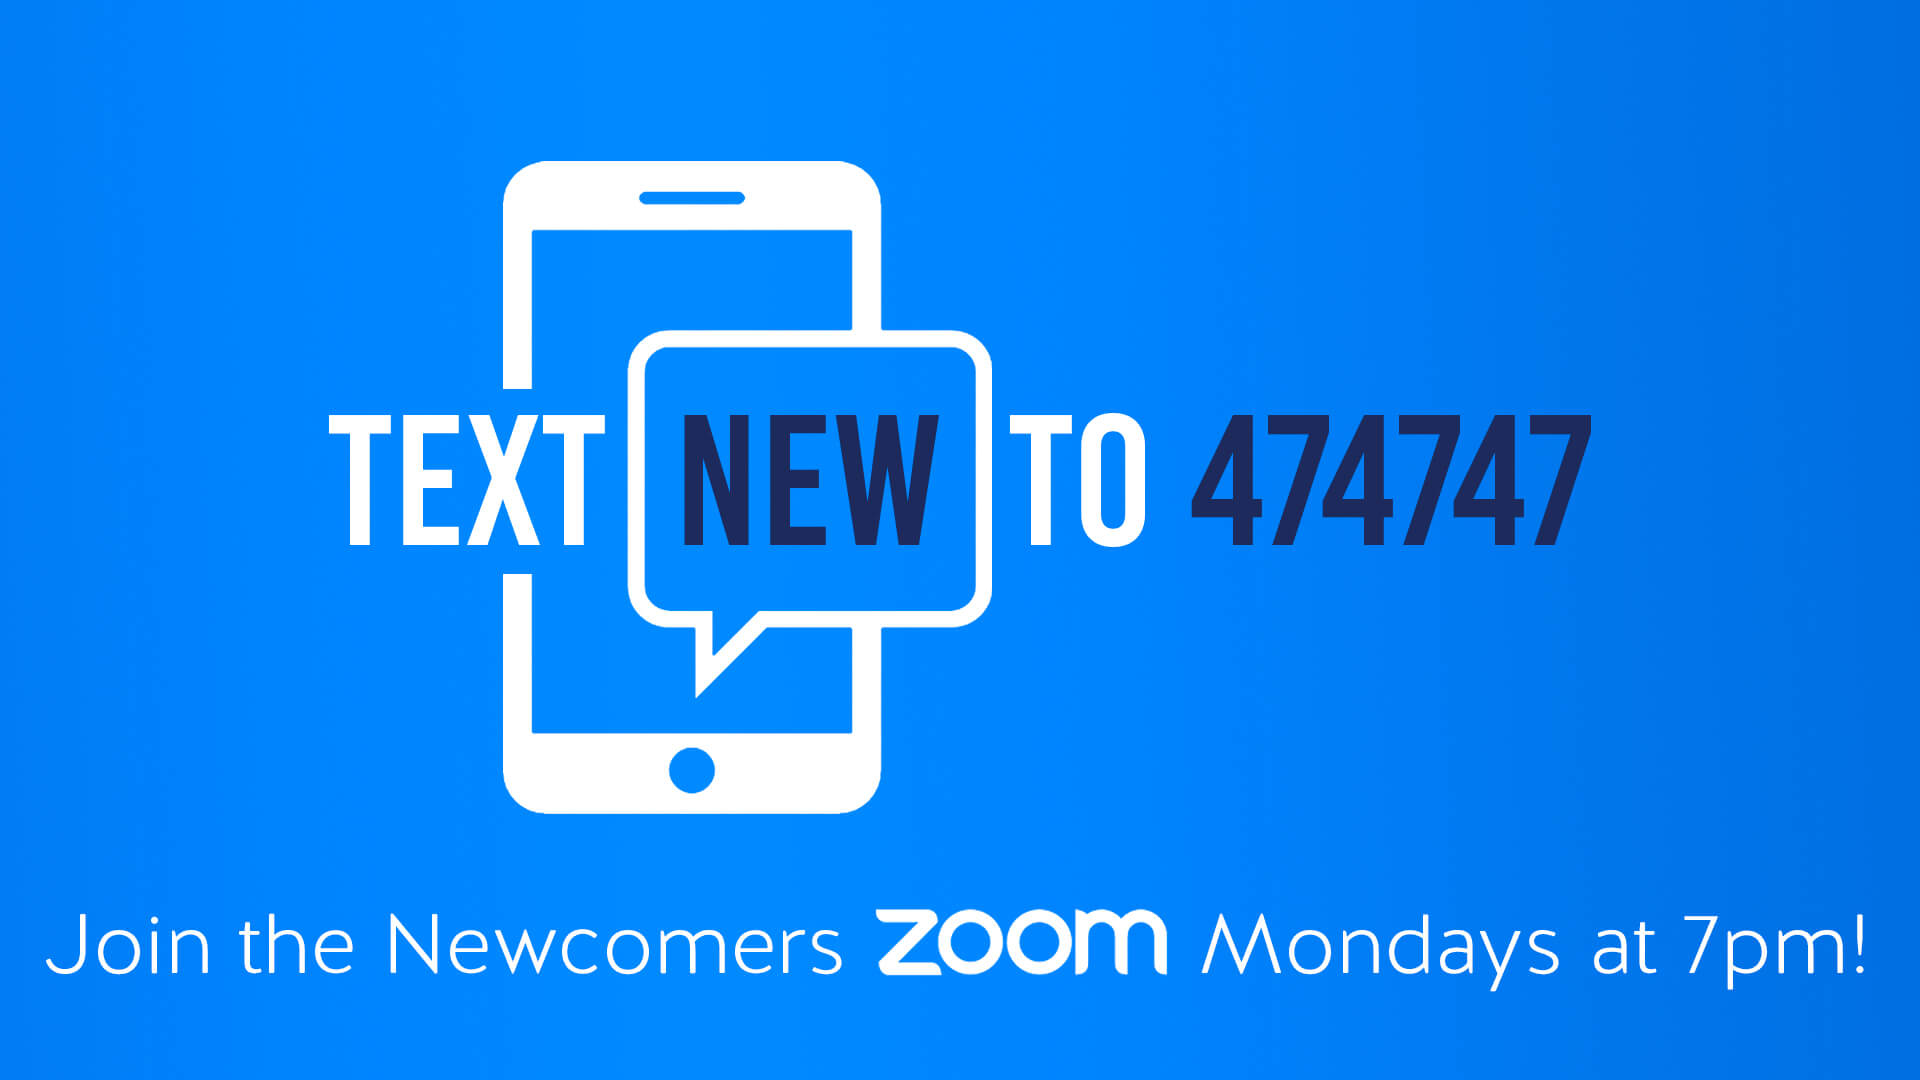 Text New to 474747 to join the Newcomers Zoom, Mondays at 7pm.